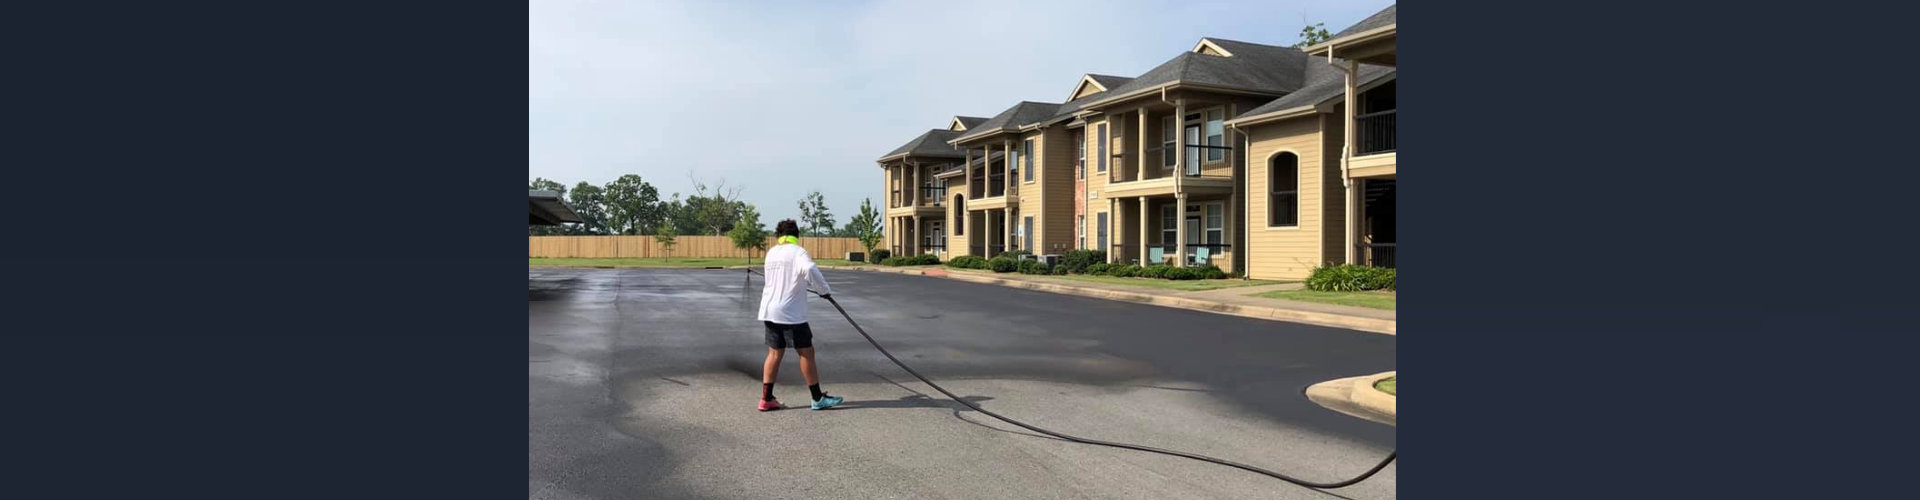 worker paving a residential street